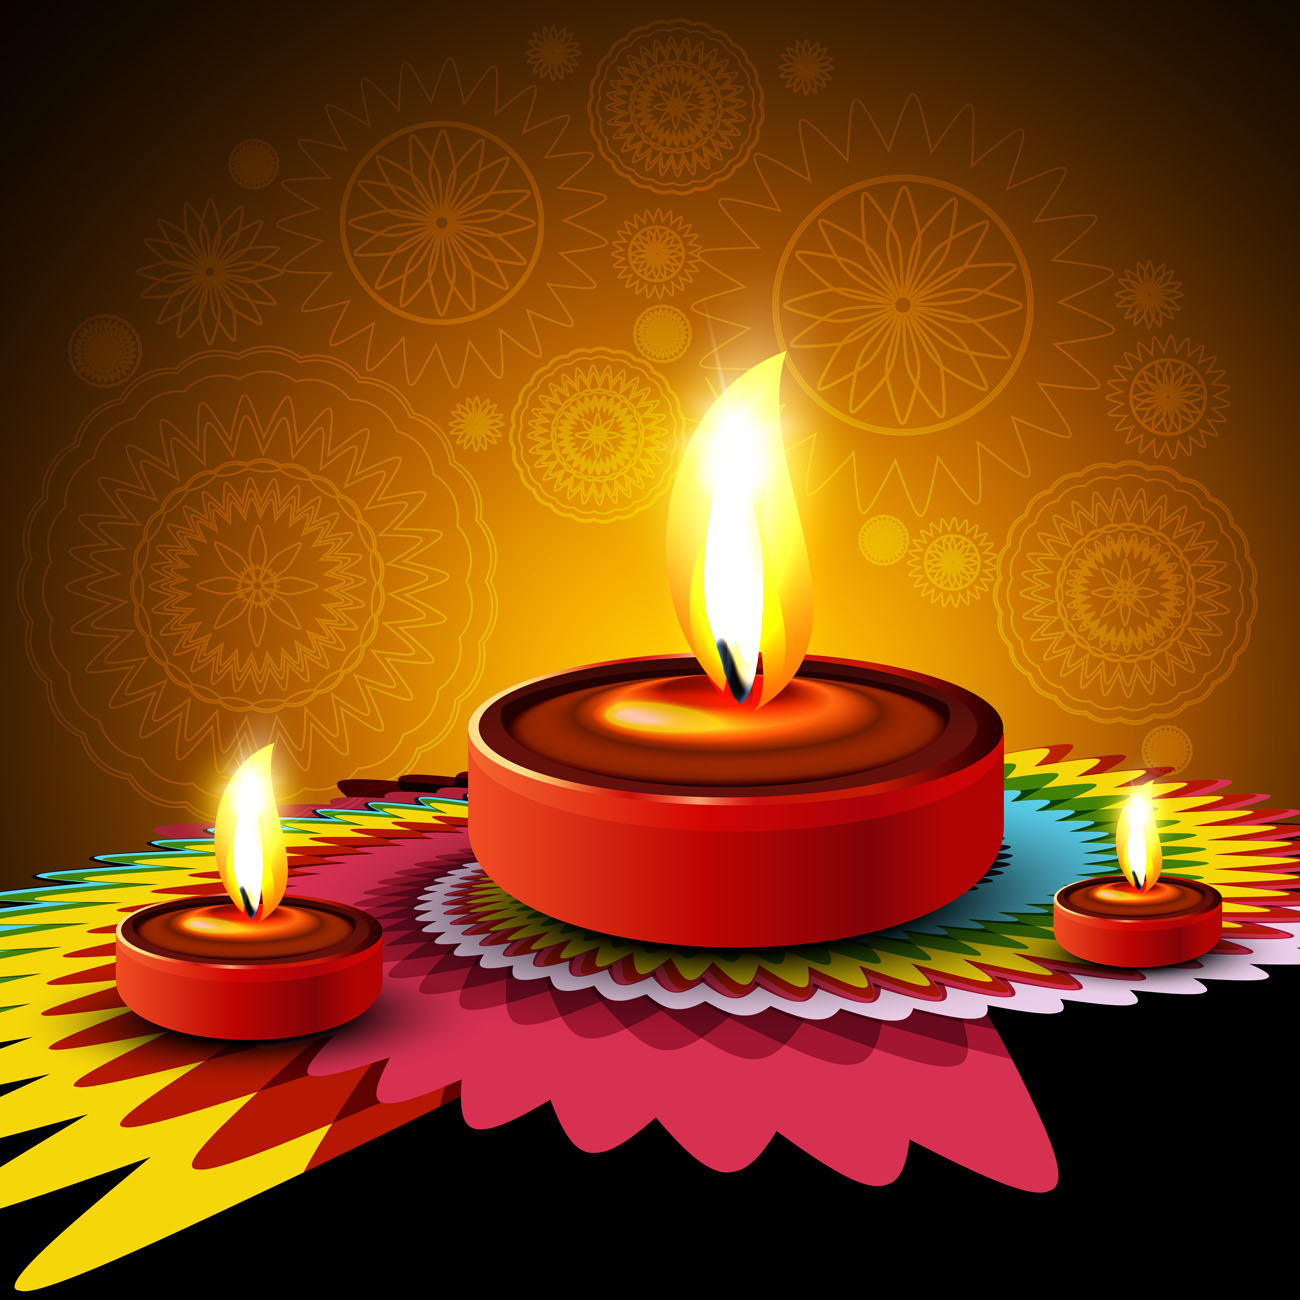 Happy Diwali Diya Oil Lamp Festival Background